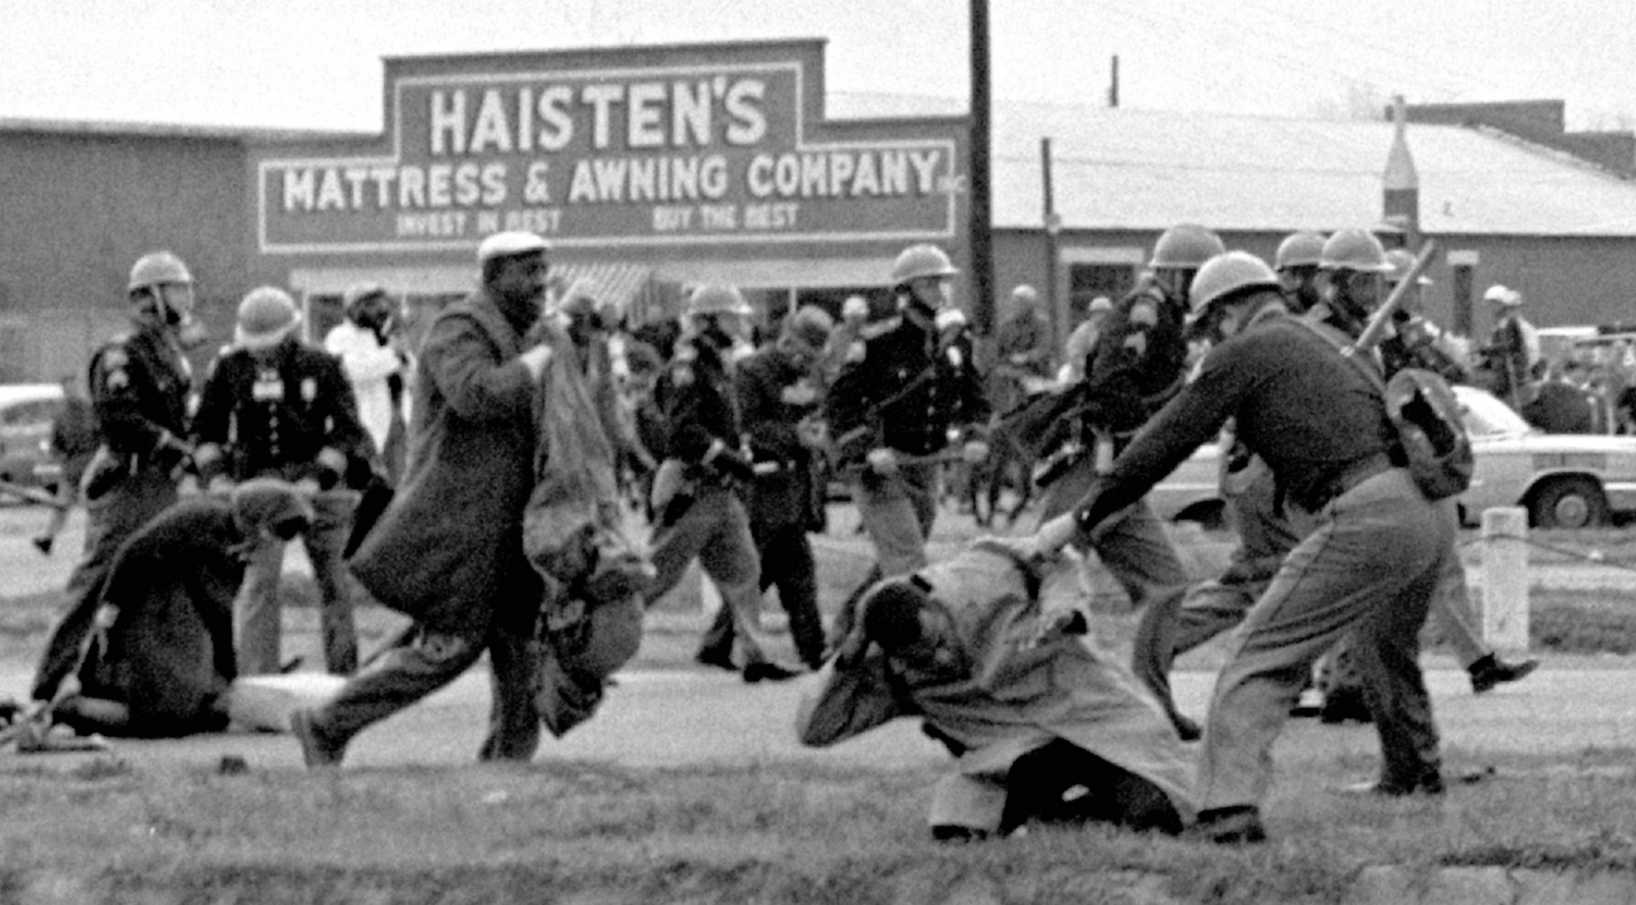 On March 7, 1965, Alabama state troopers beat civil rights marchers in Selma, Ala. This month marks the 50th anniversary of a day that led to passage of the Voting Rights Act of 1965. (AP)